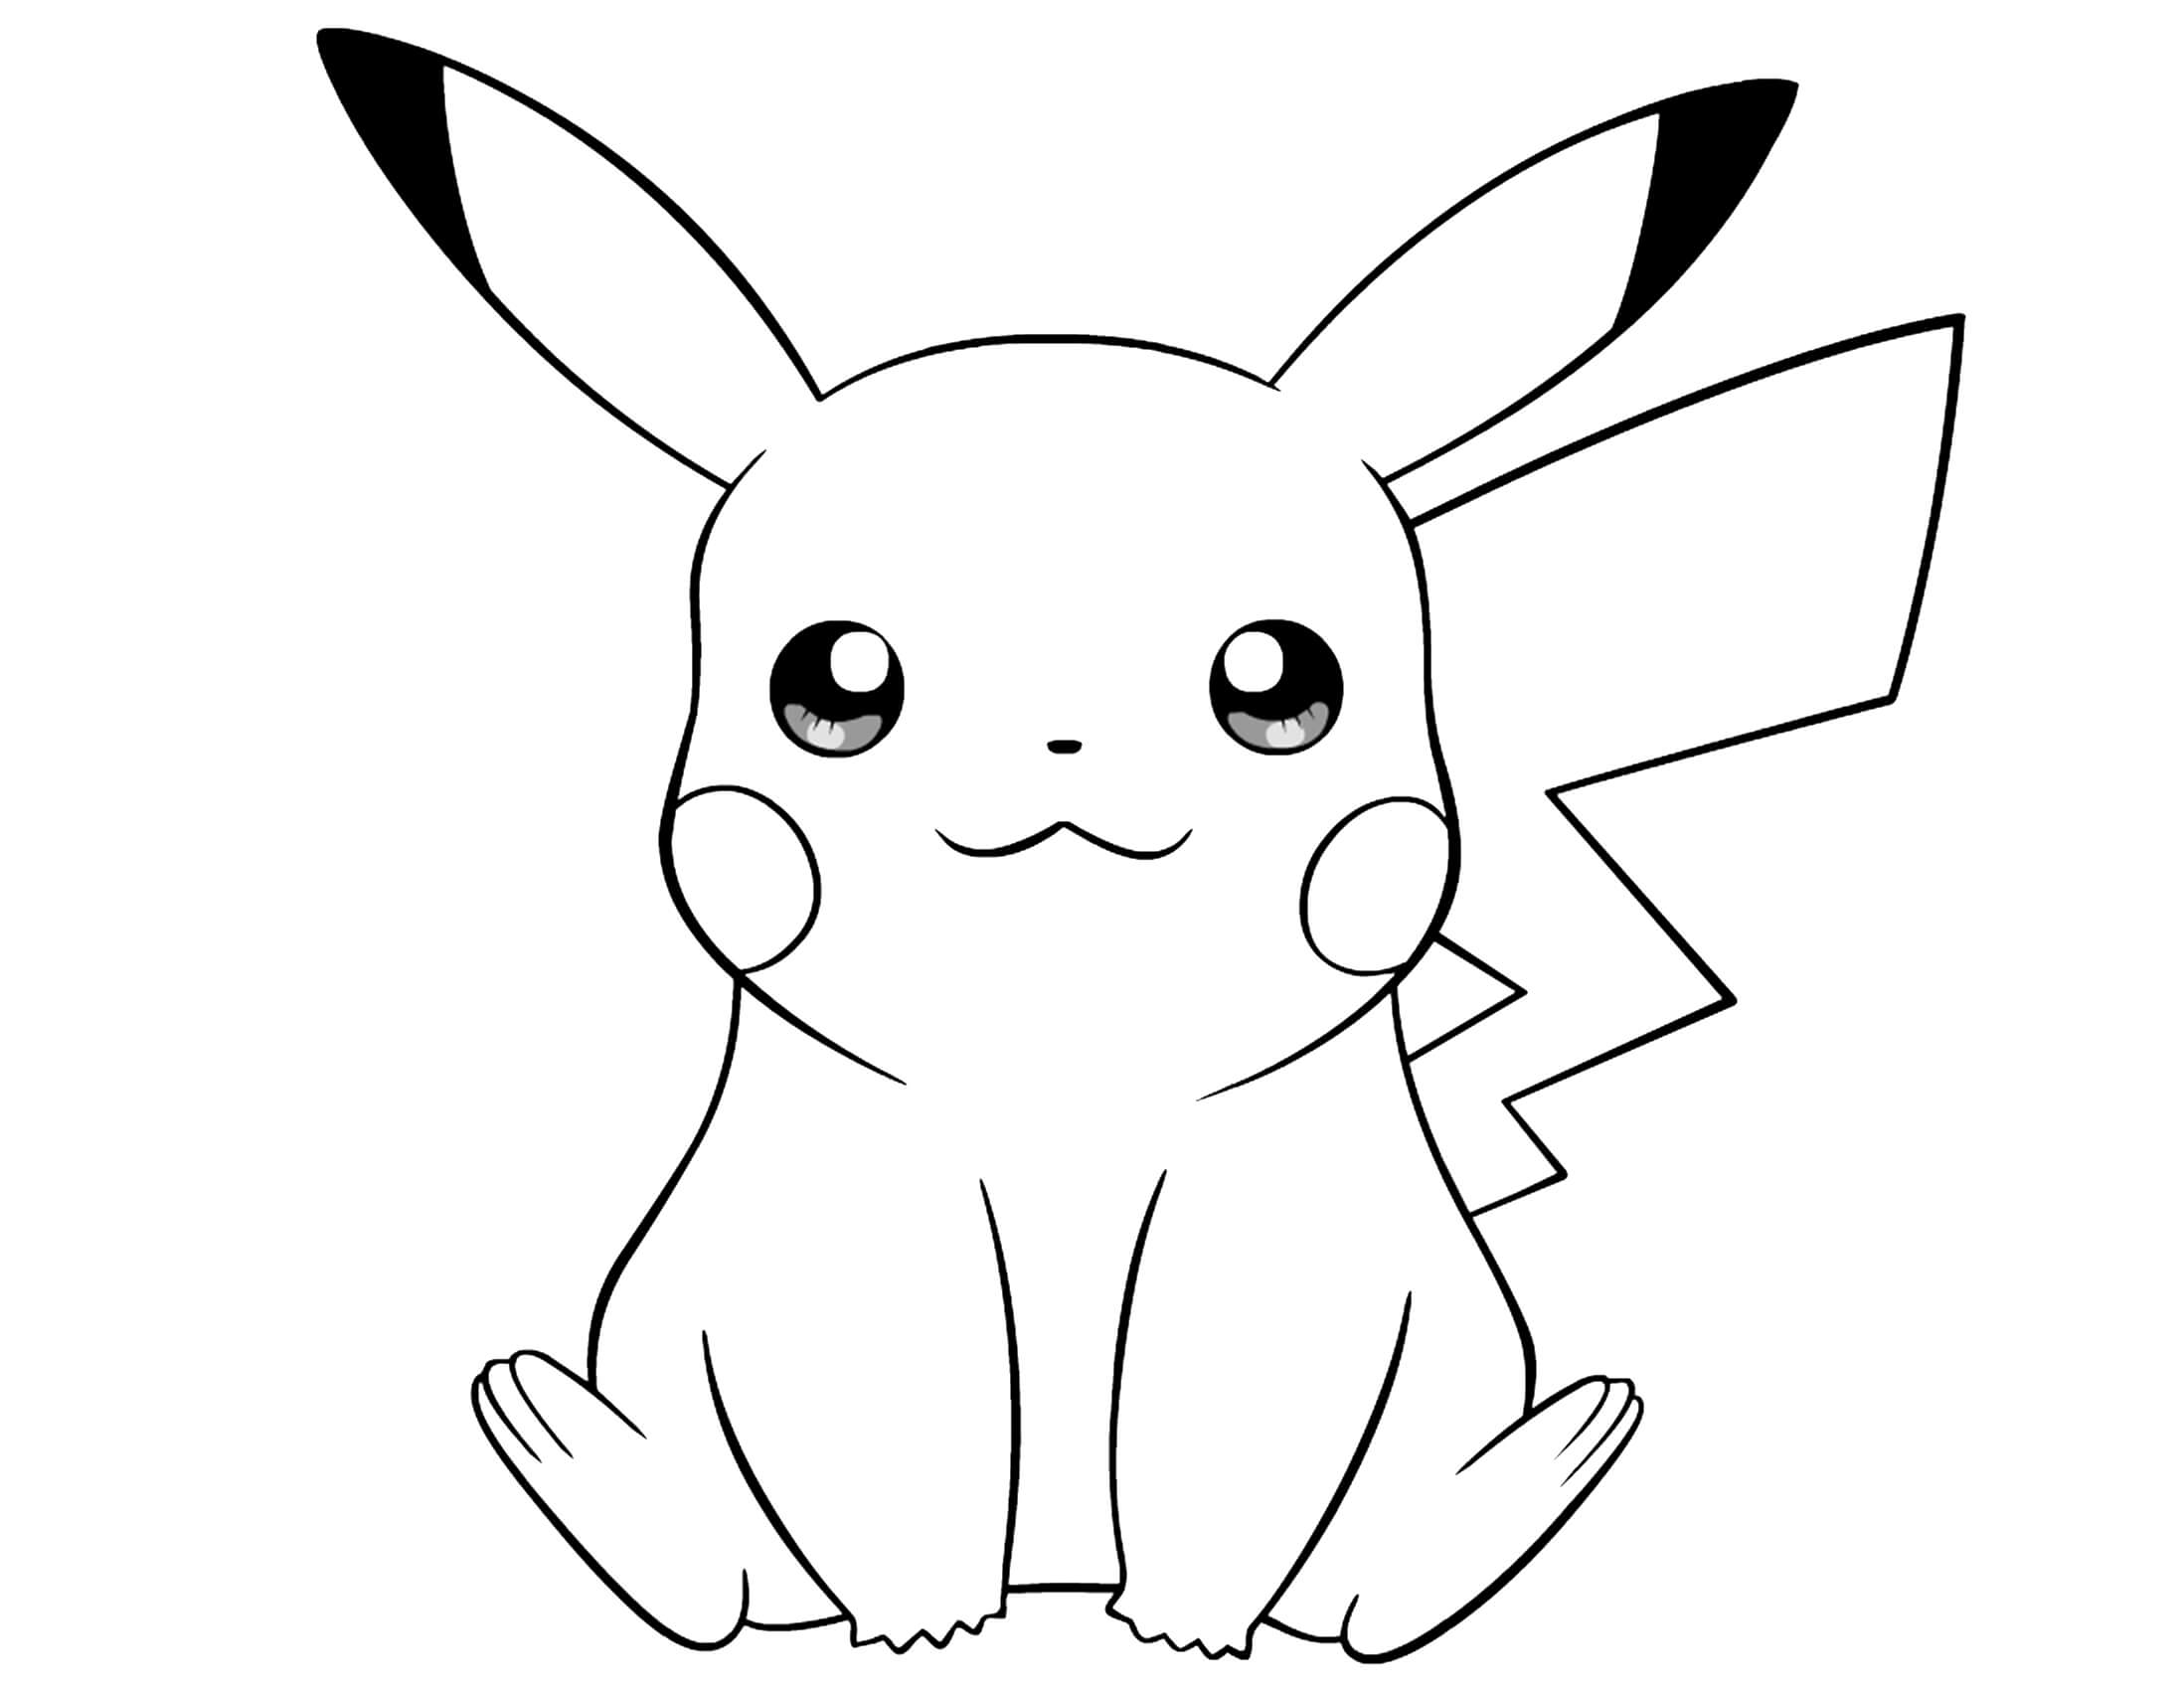 pikachu to color pikachu coloring pages to download and print for free color pikachu to